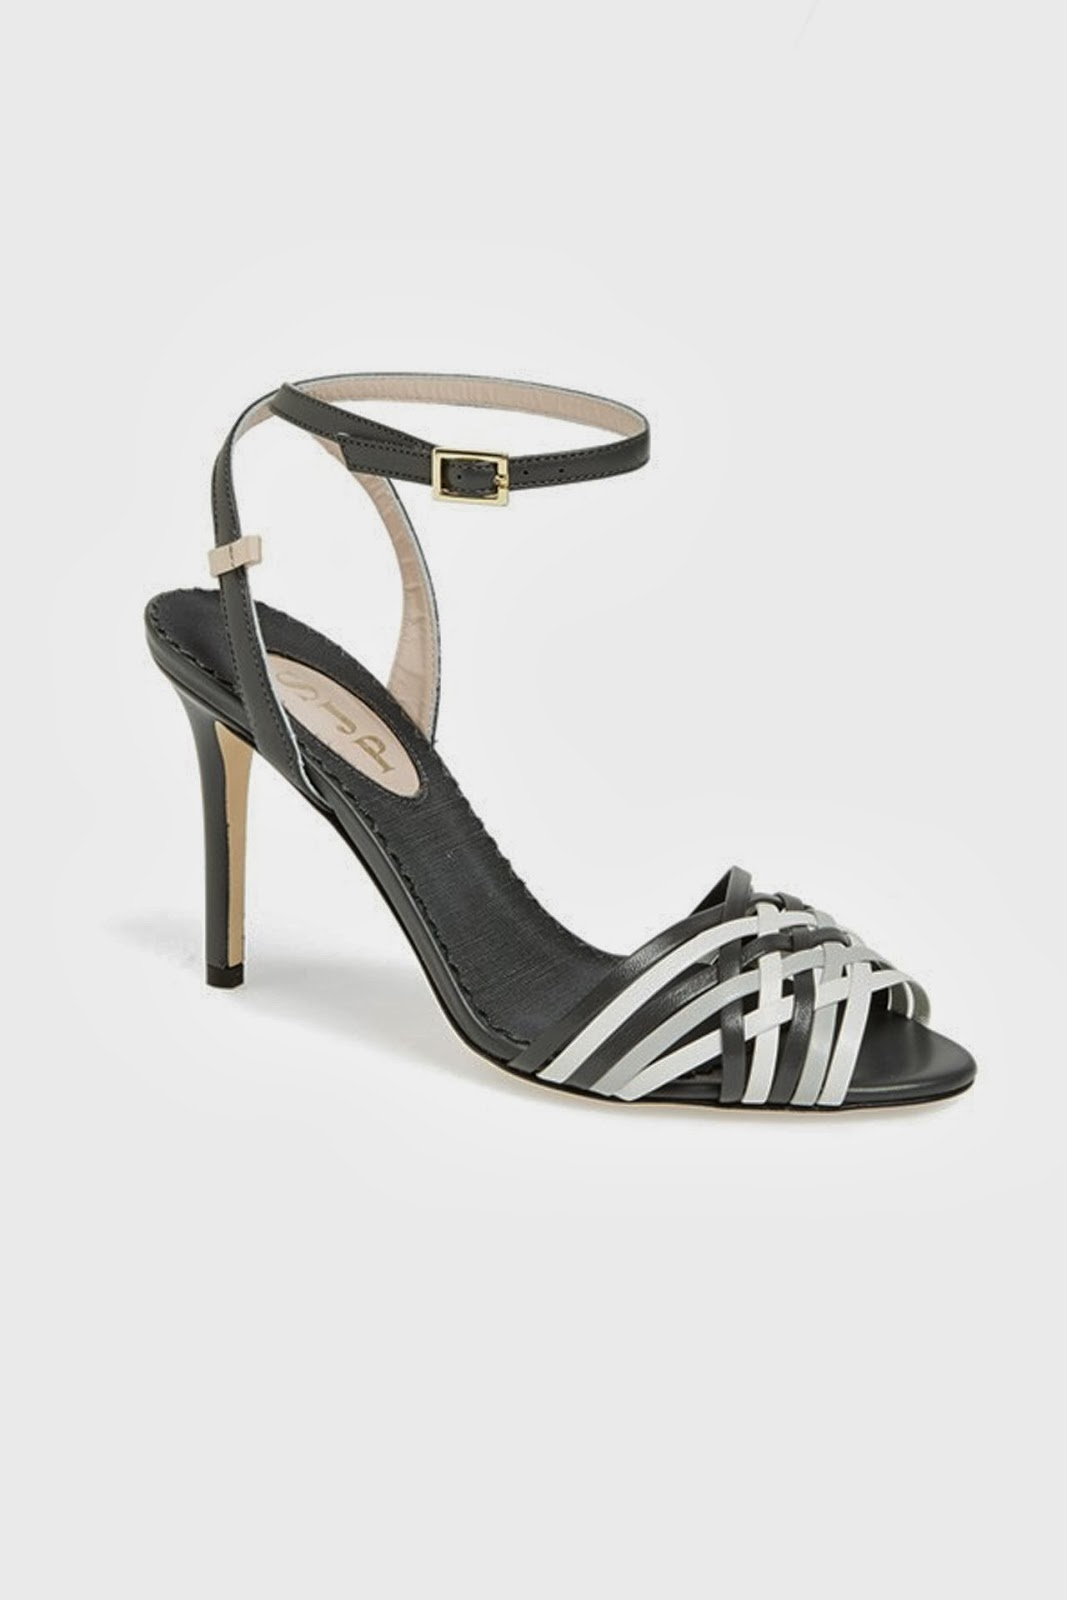 NYC Recessionista: NOW AVAILABLE - SJP Shoes by Sarah ...